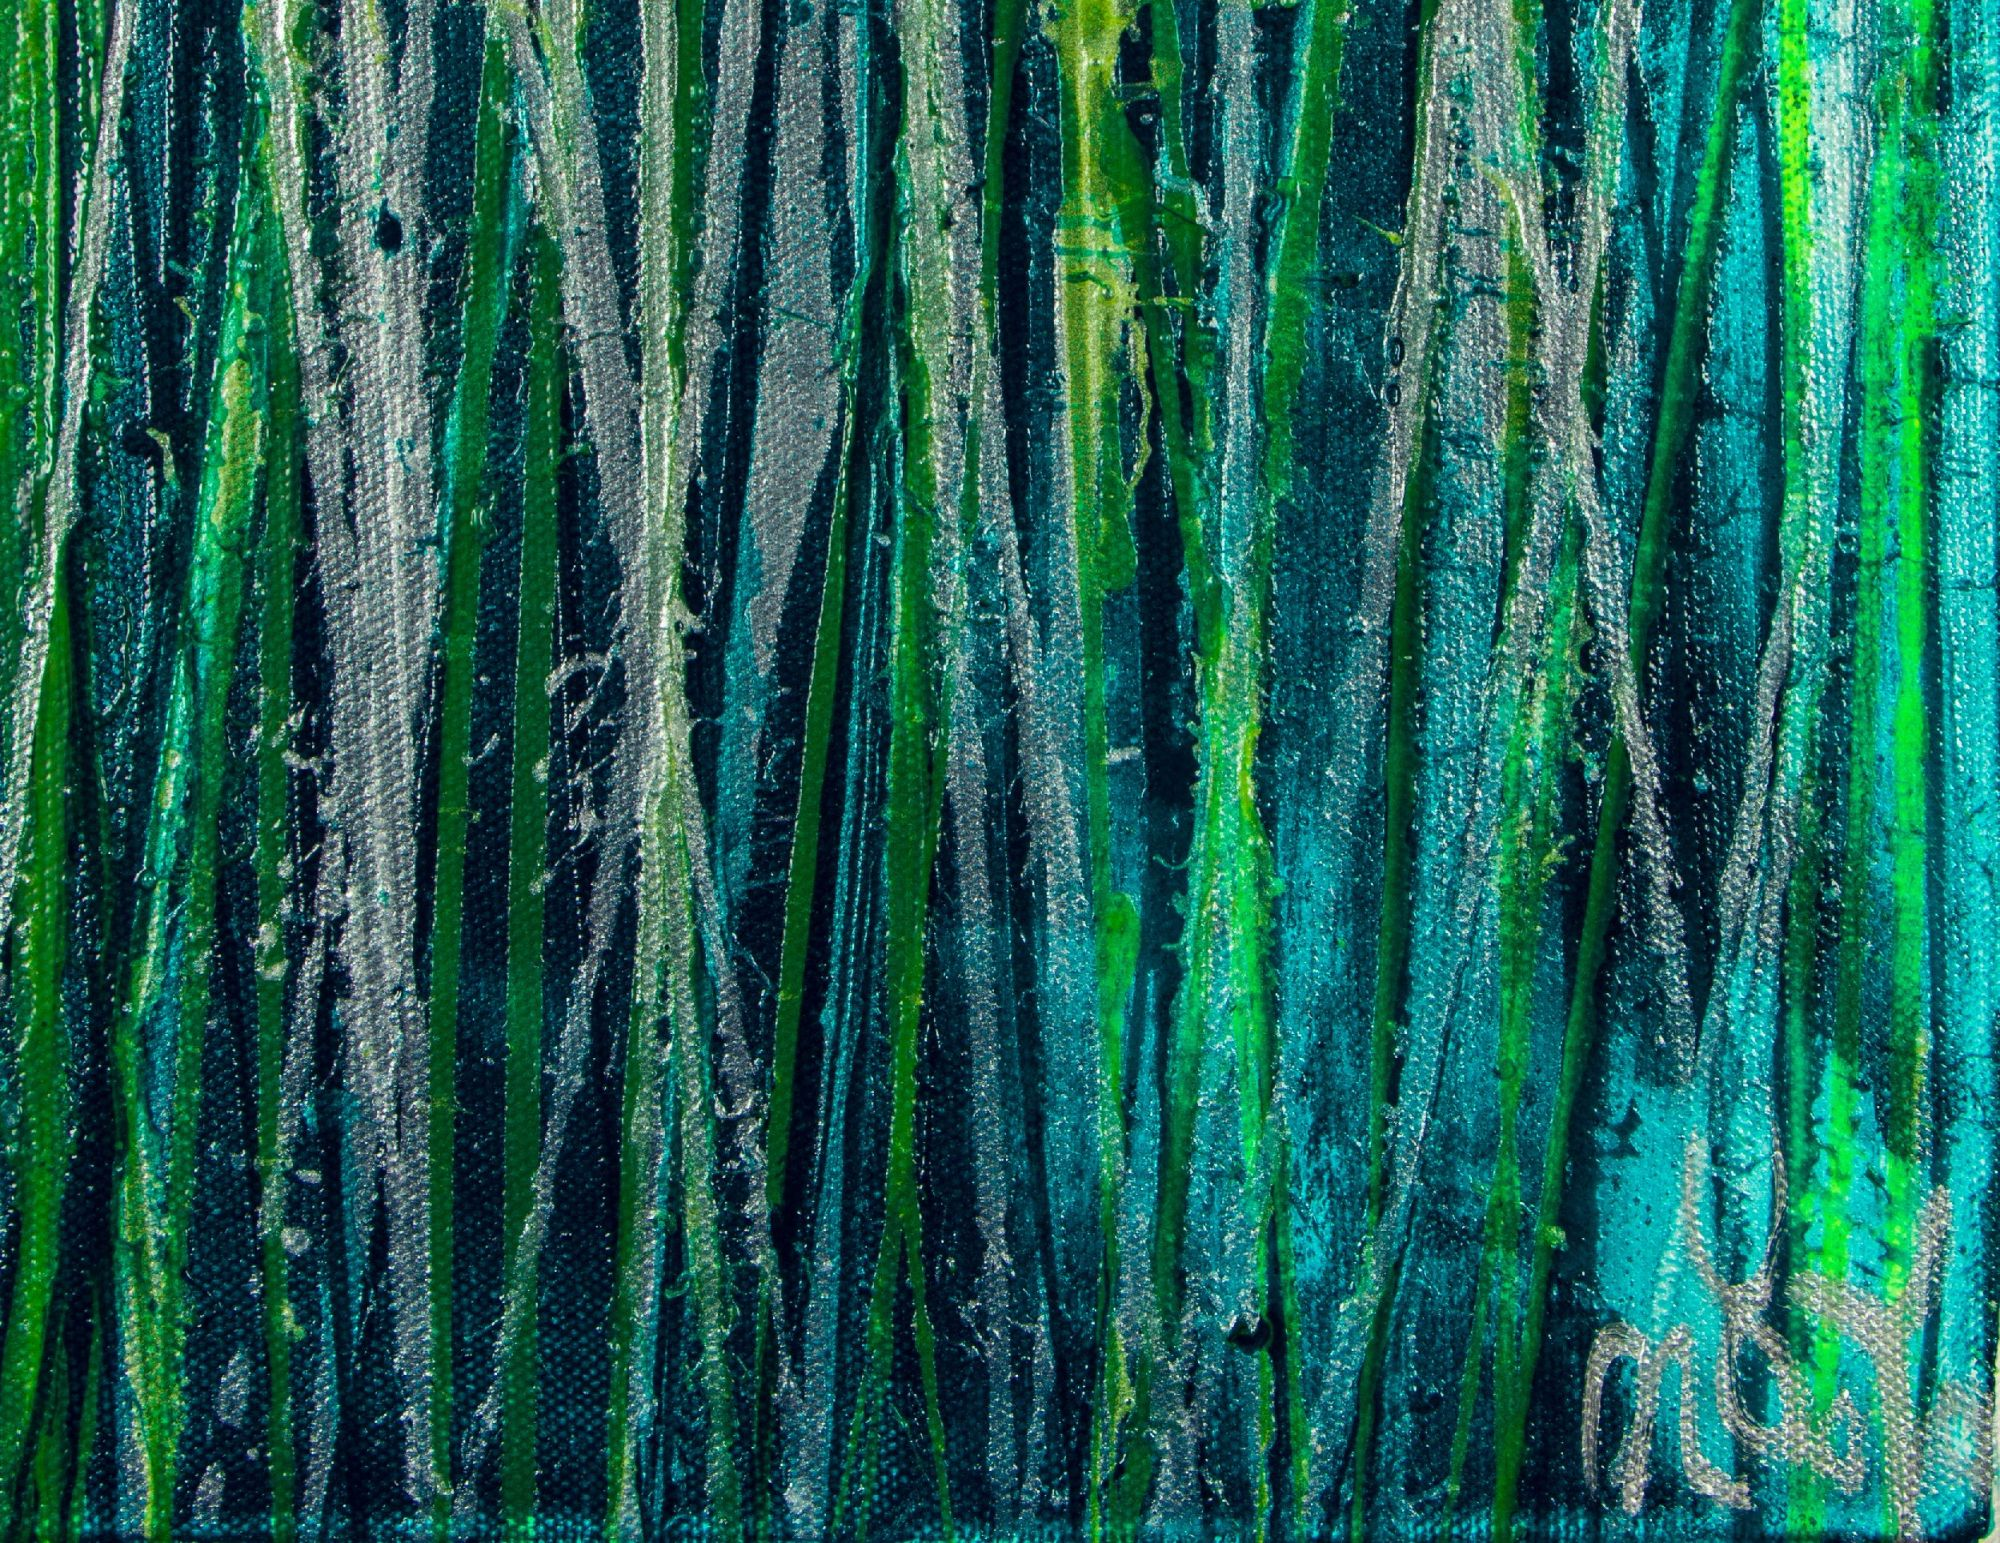 Signature - Vernal Garden (With Green and Silver) (2021) - Triptych